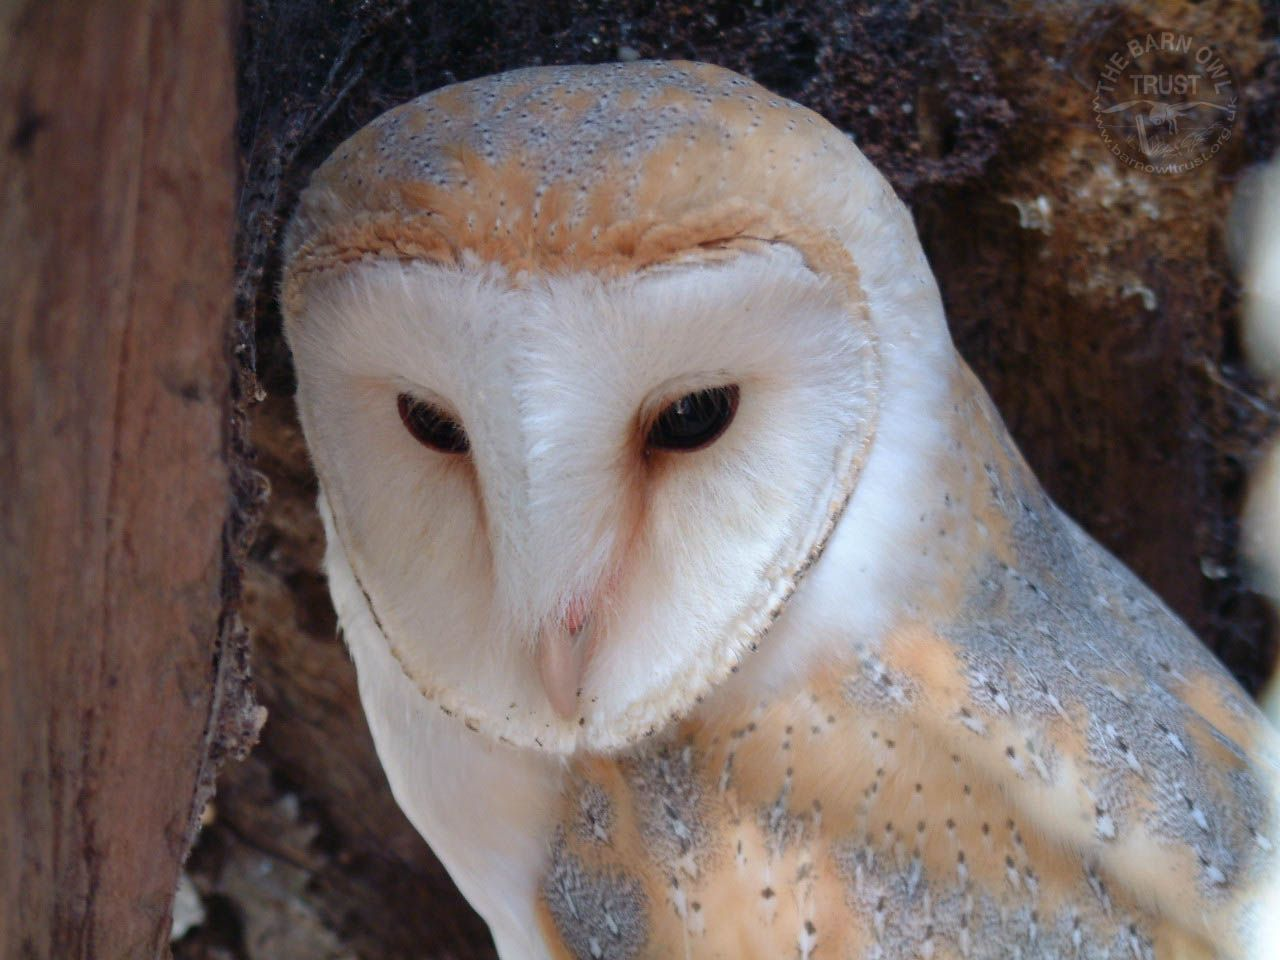 Wallpaper Archives The Barn Owl Trust